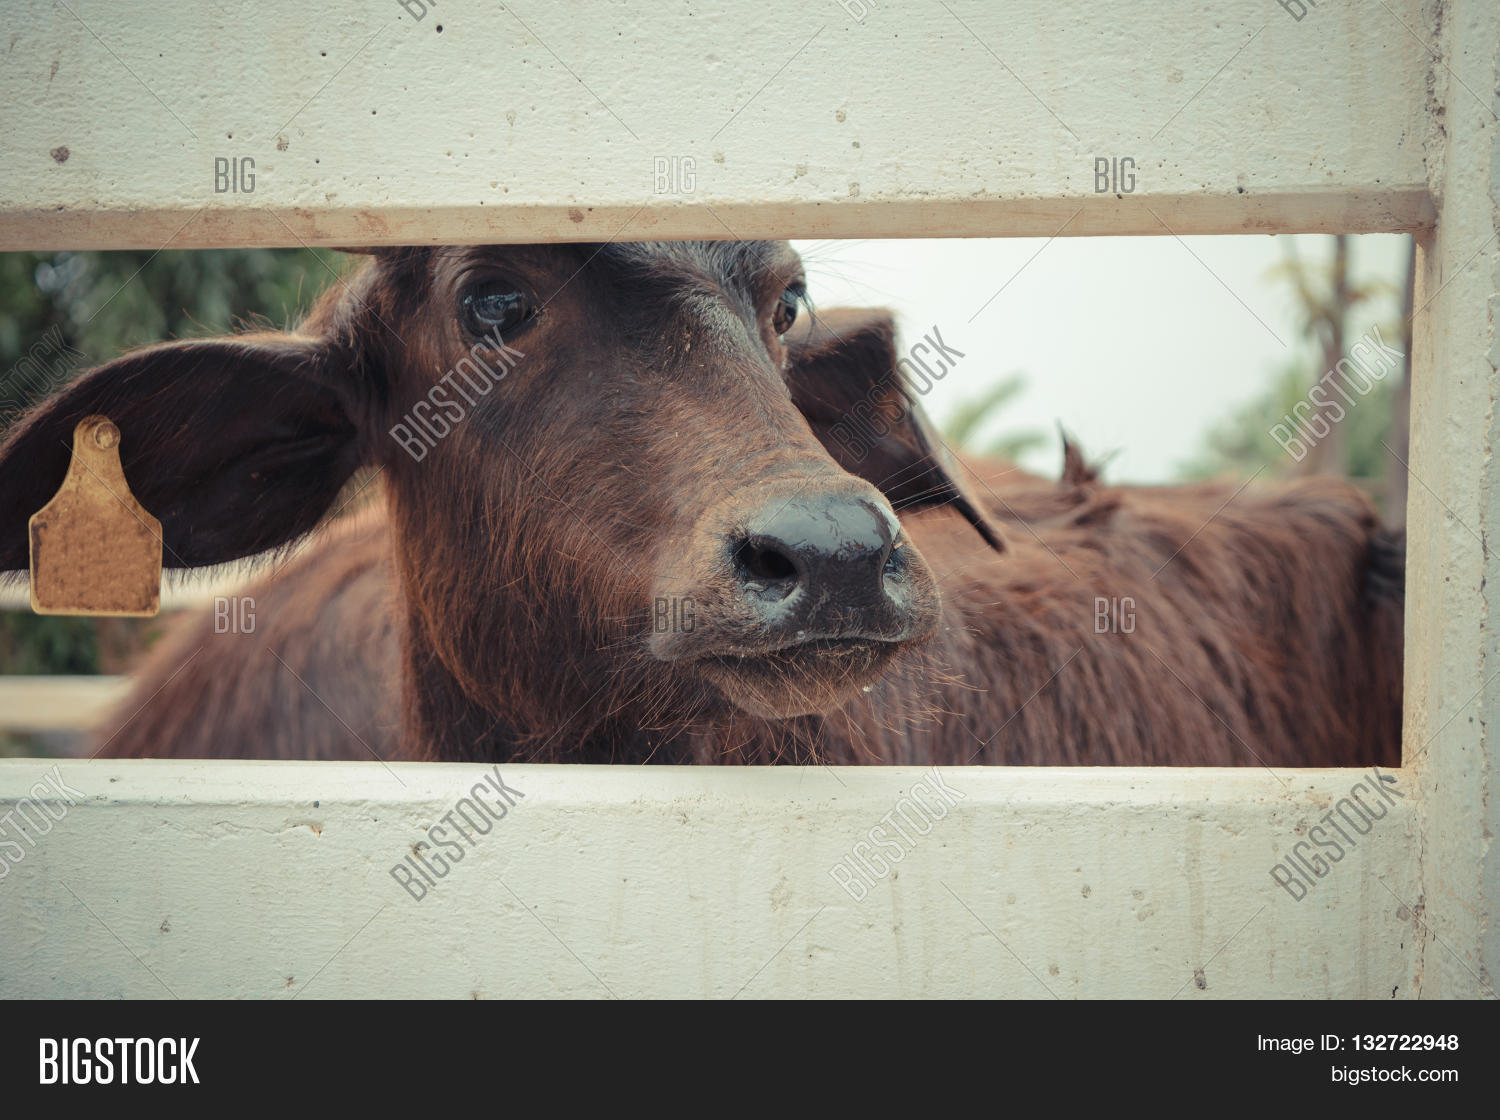 Murrah Buffalo Image & Photo (Free Trial) | Bigstock